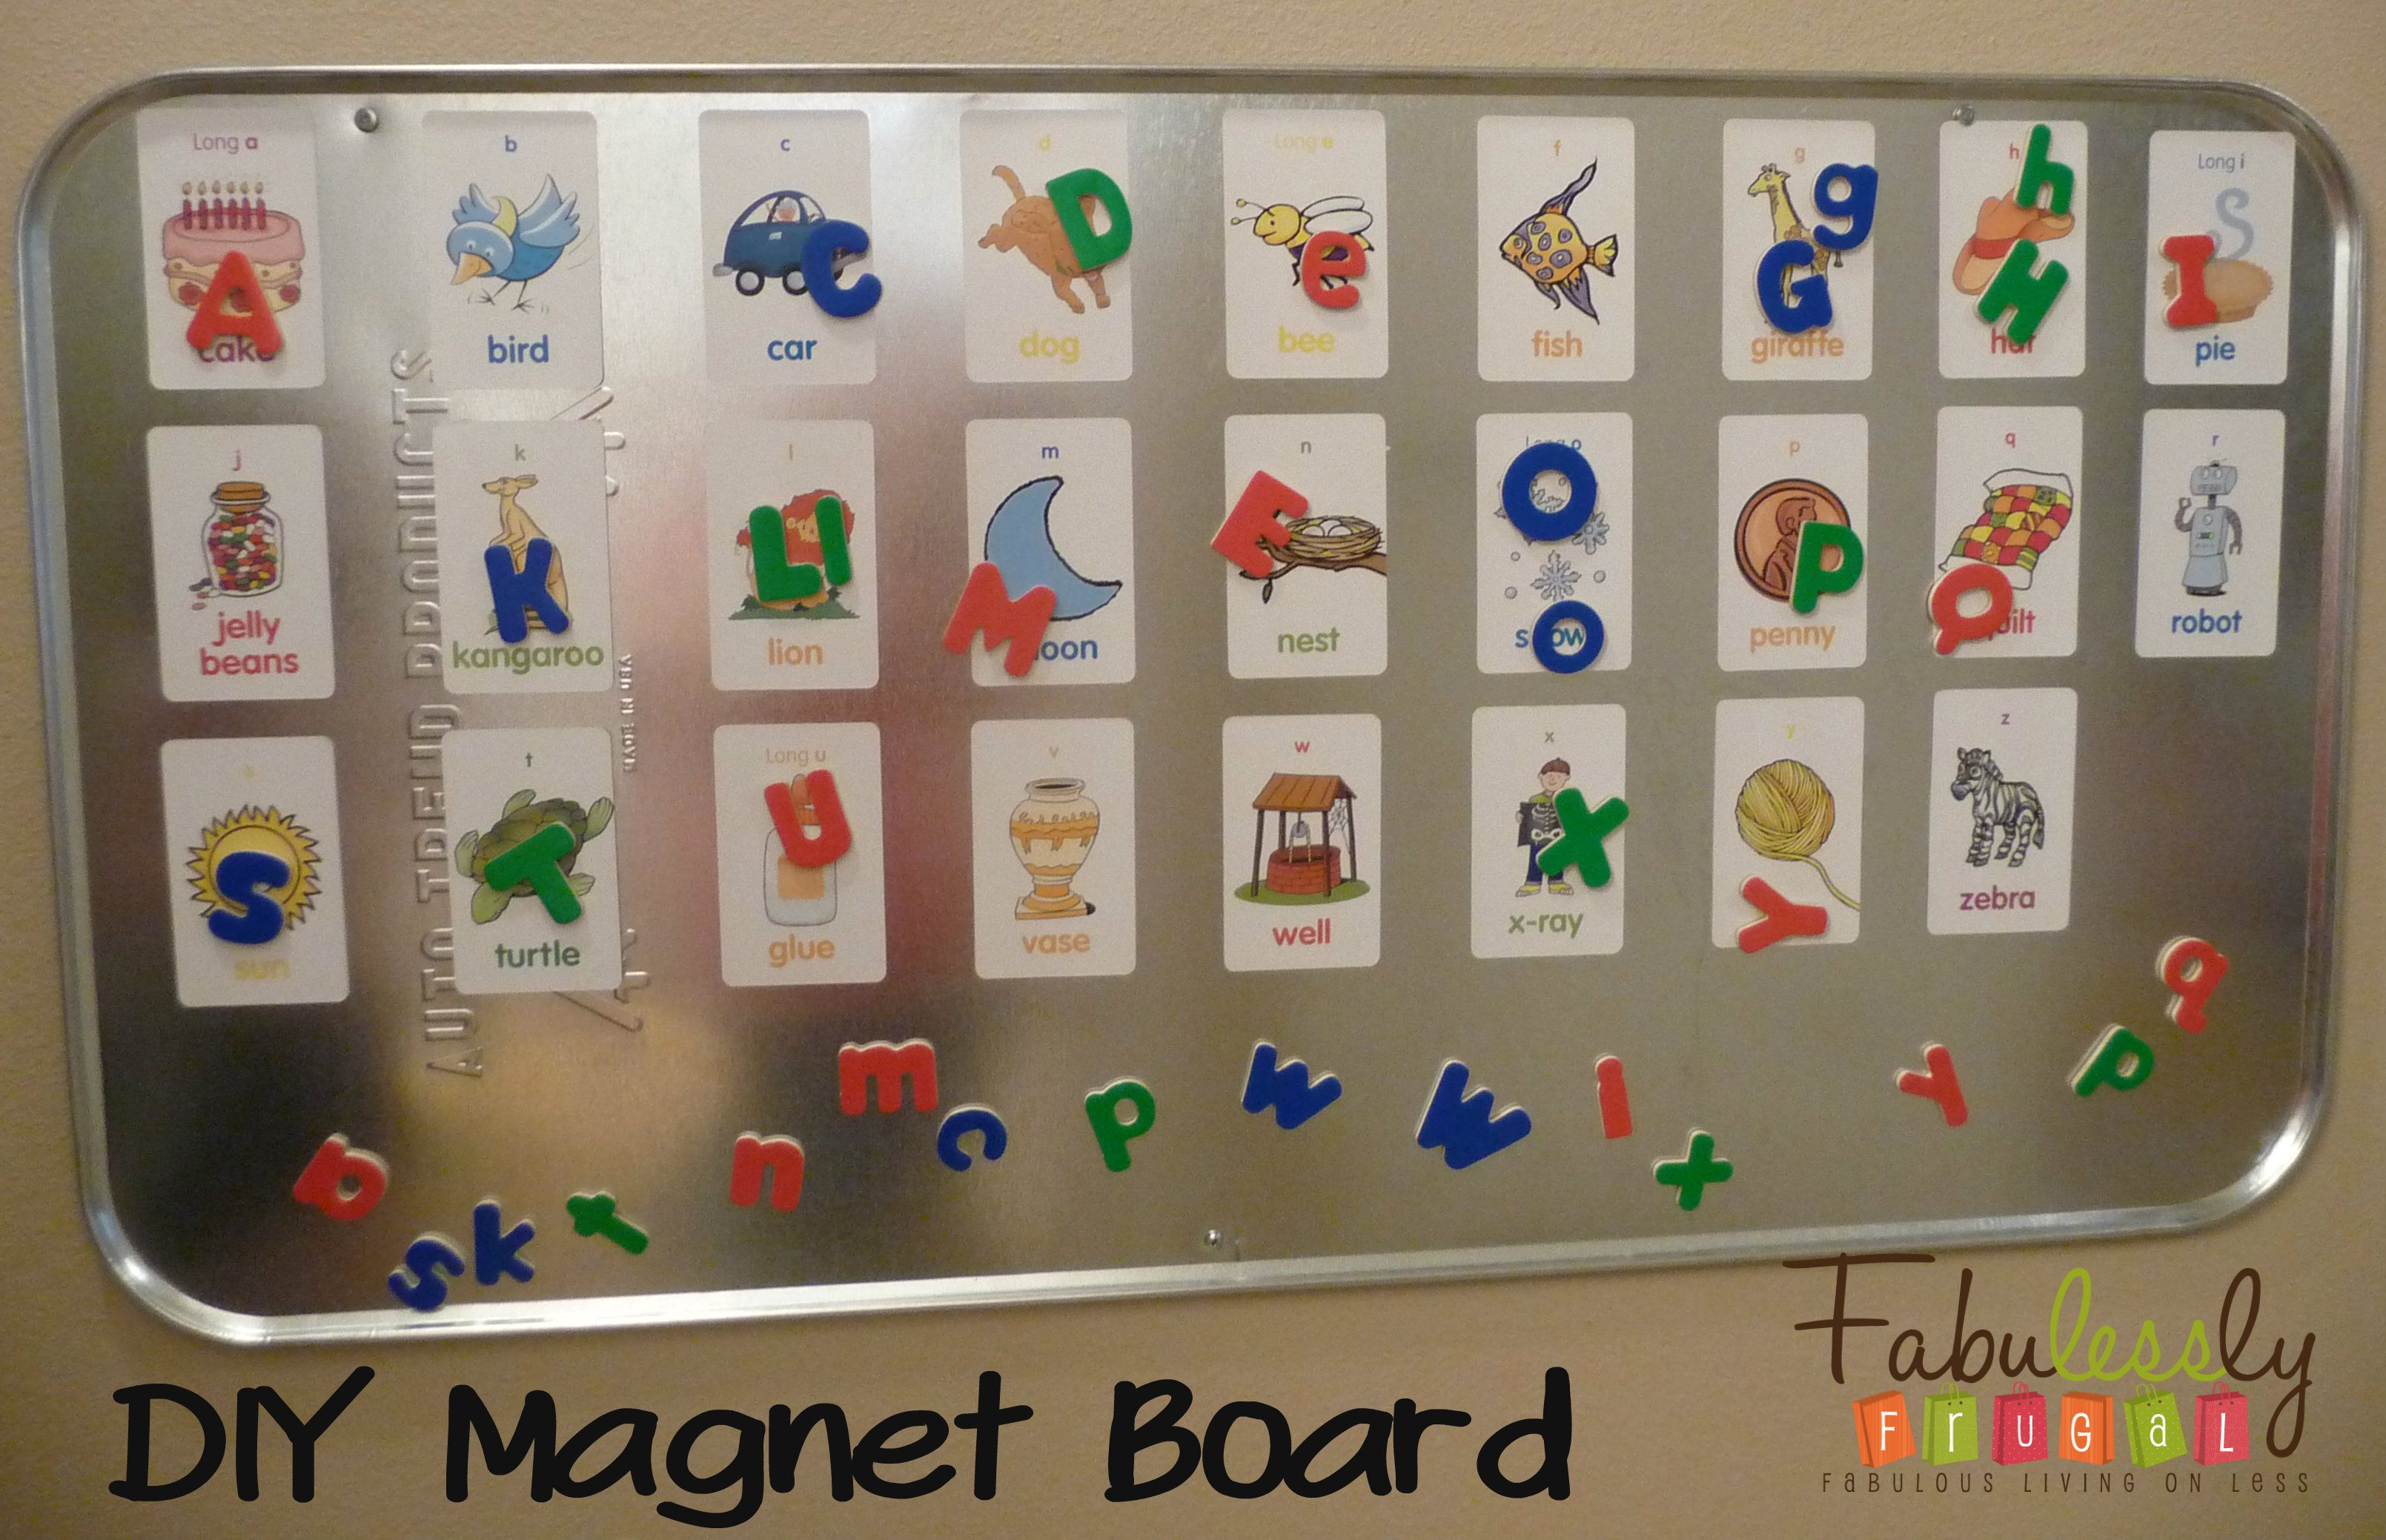 Diy Magnet Board For Your Kids Diy Magnets Magnet